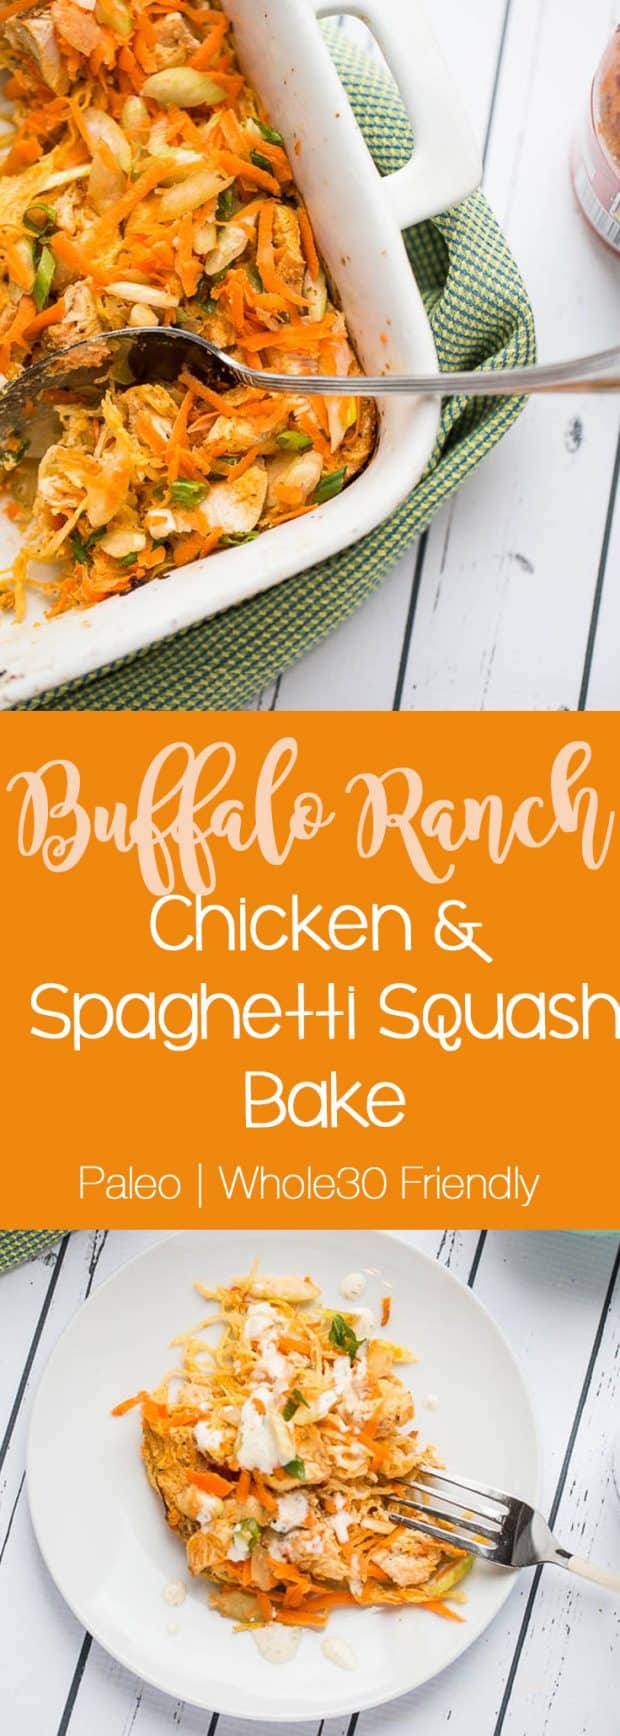 Buffalo Ranch Chicken & Spaghetti Squash Bake | paleo recipes | Whole30 recipes | gluten-free recipes | perrysplate.com